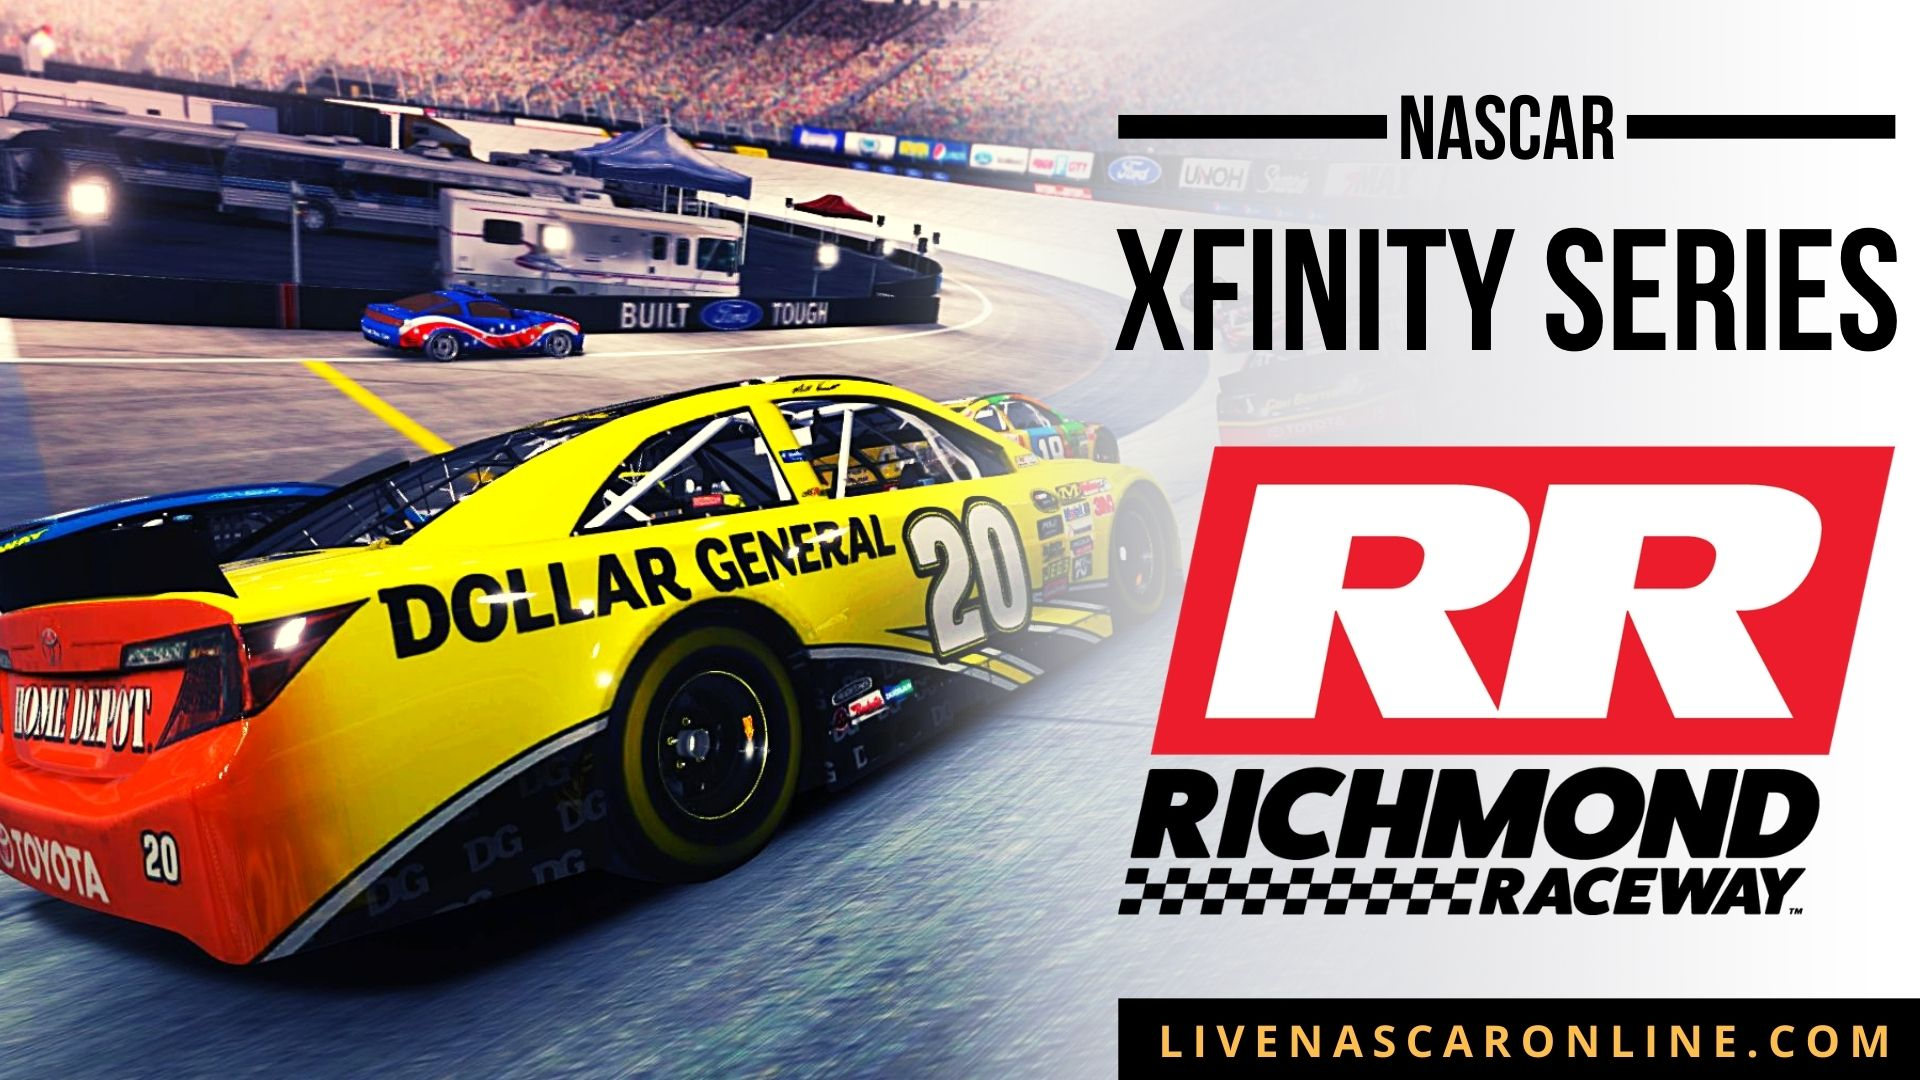 NASCAR Xfinity Race at Richmond Live Stream 2021